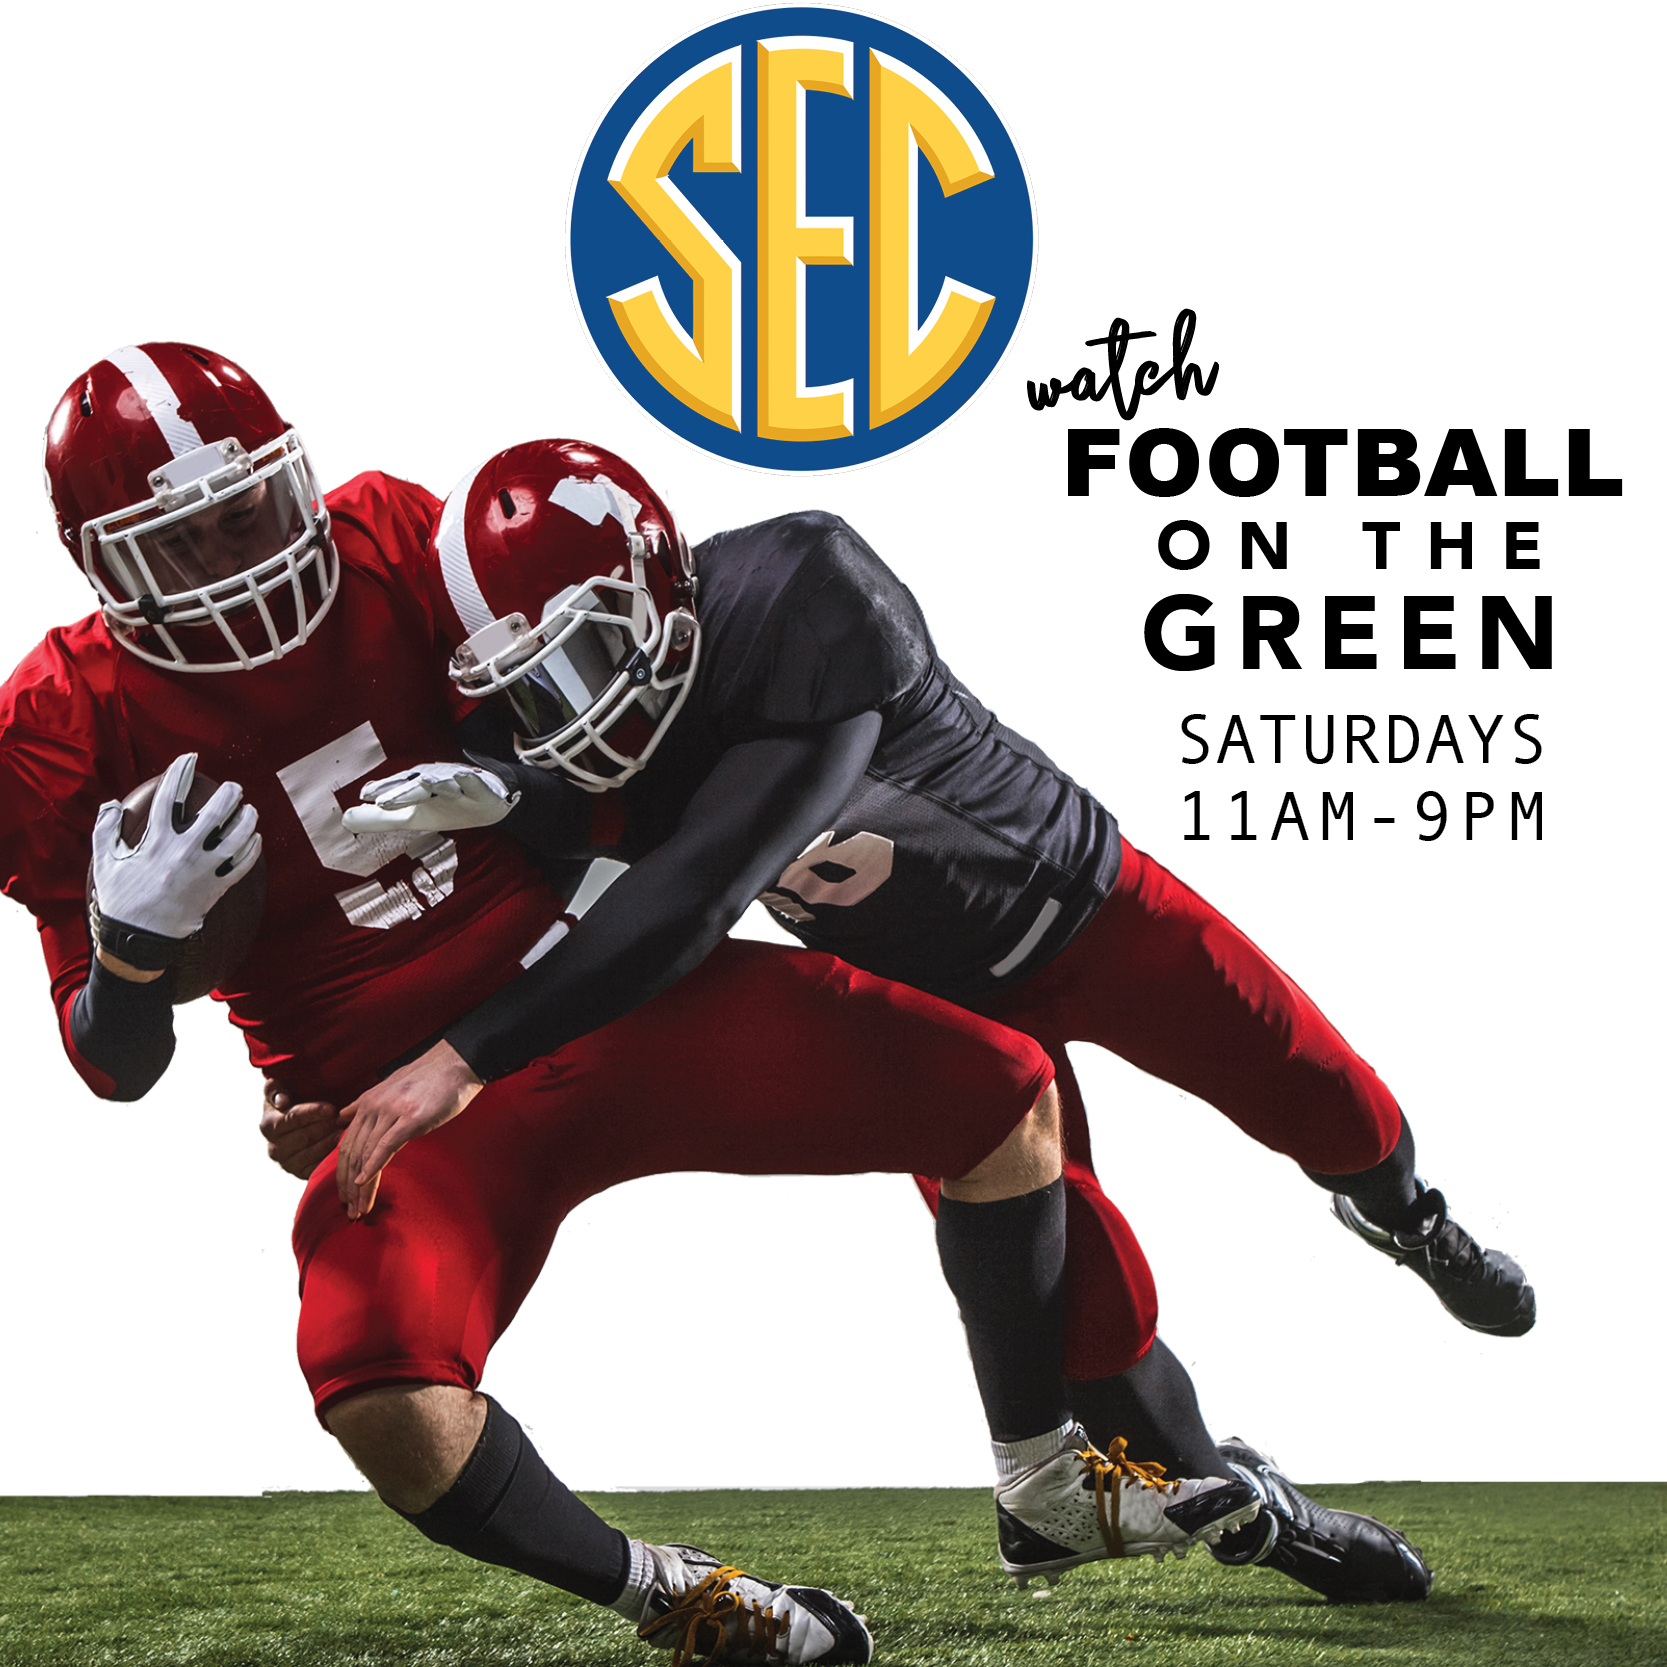 Catch SEC Football on the Green